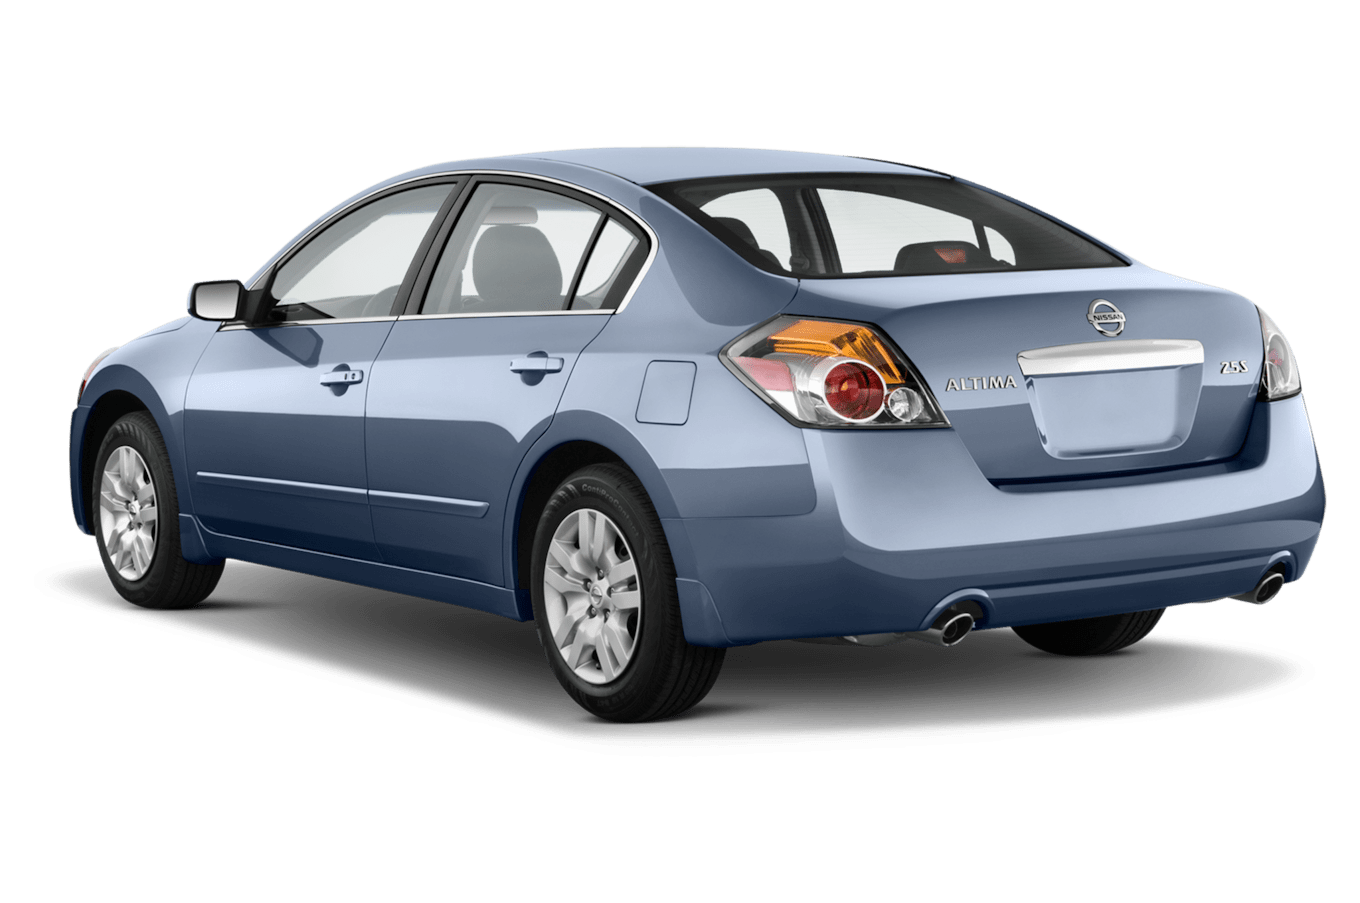 2011 Nissan Altima Aftermarket Radio Image 13 2 2005 Maf Wiring Diagram 2012 Reviews And Rating Motor Trend